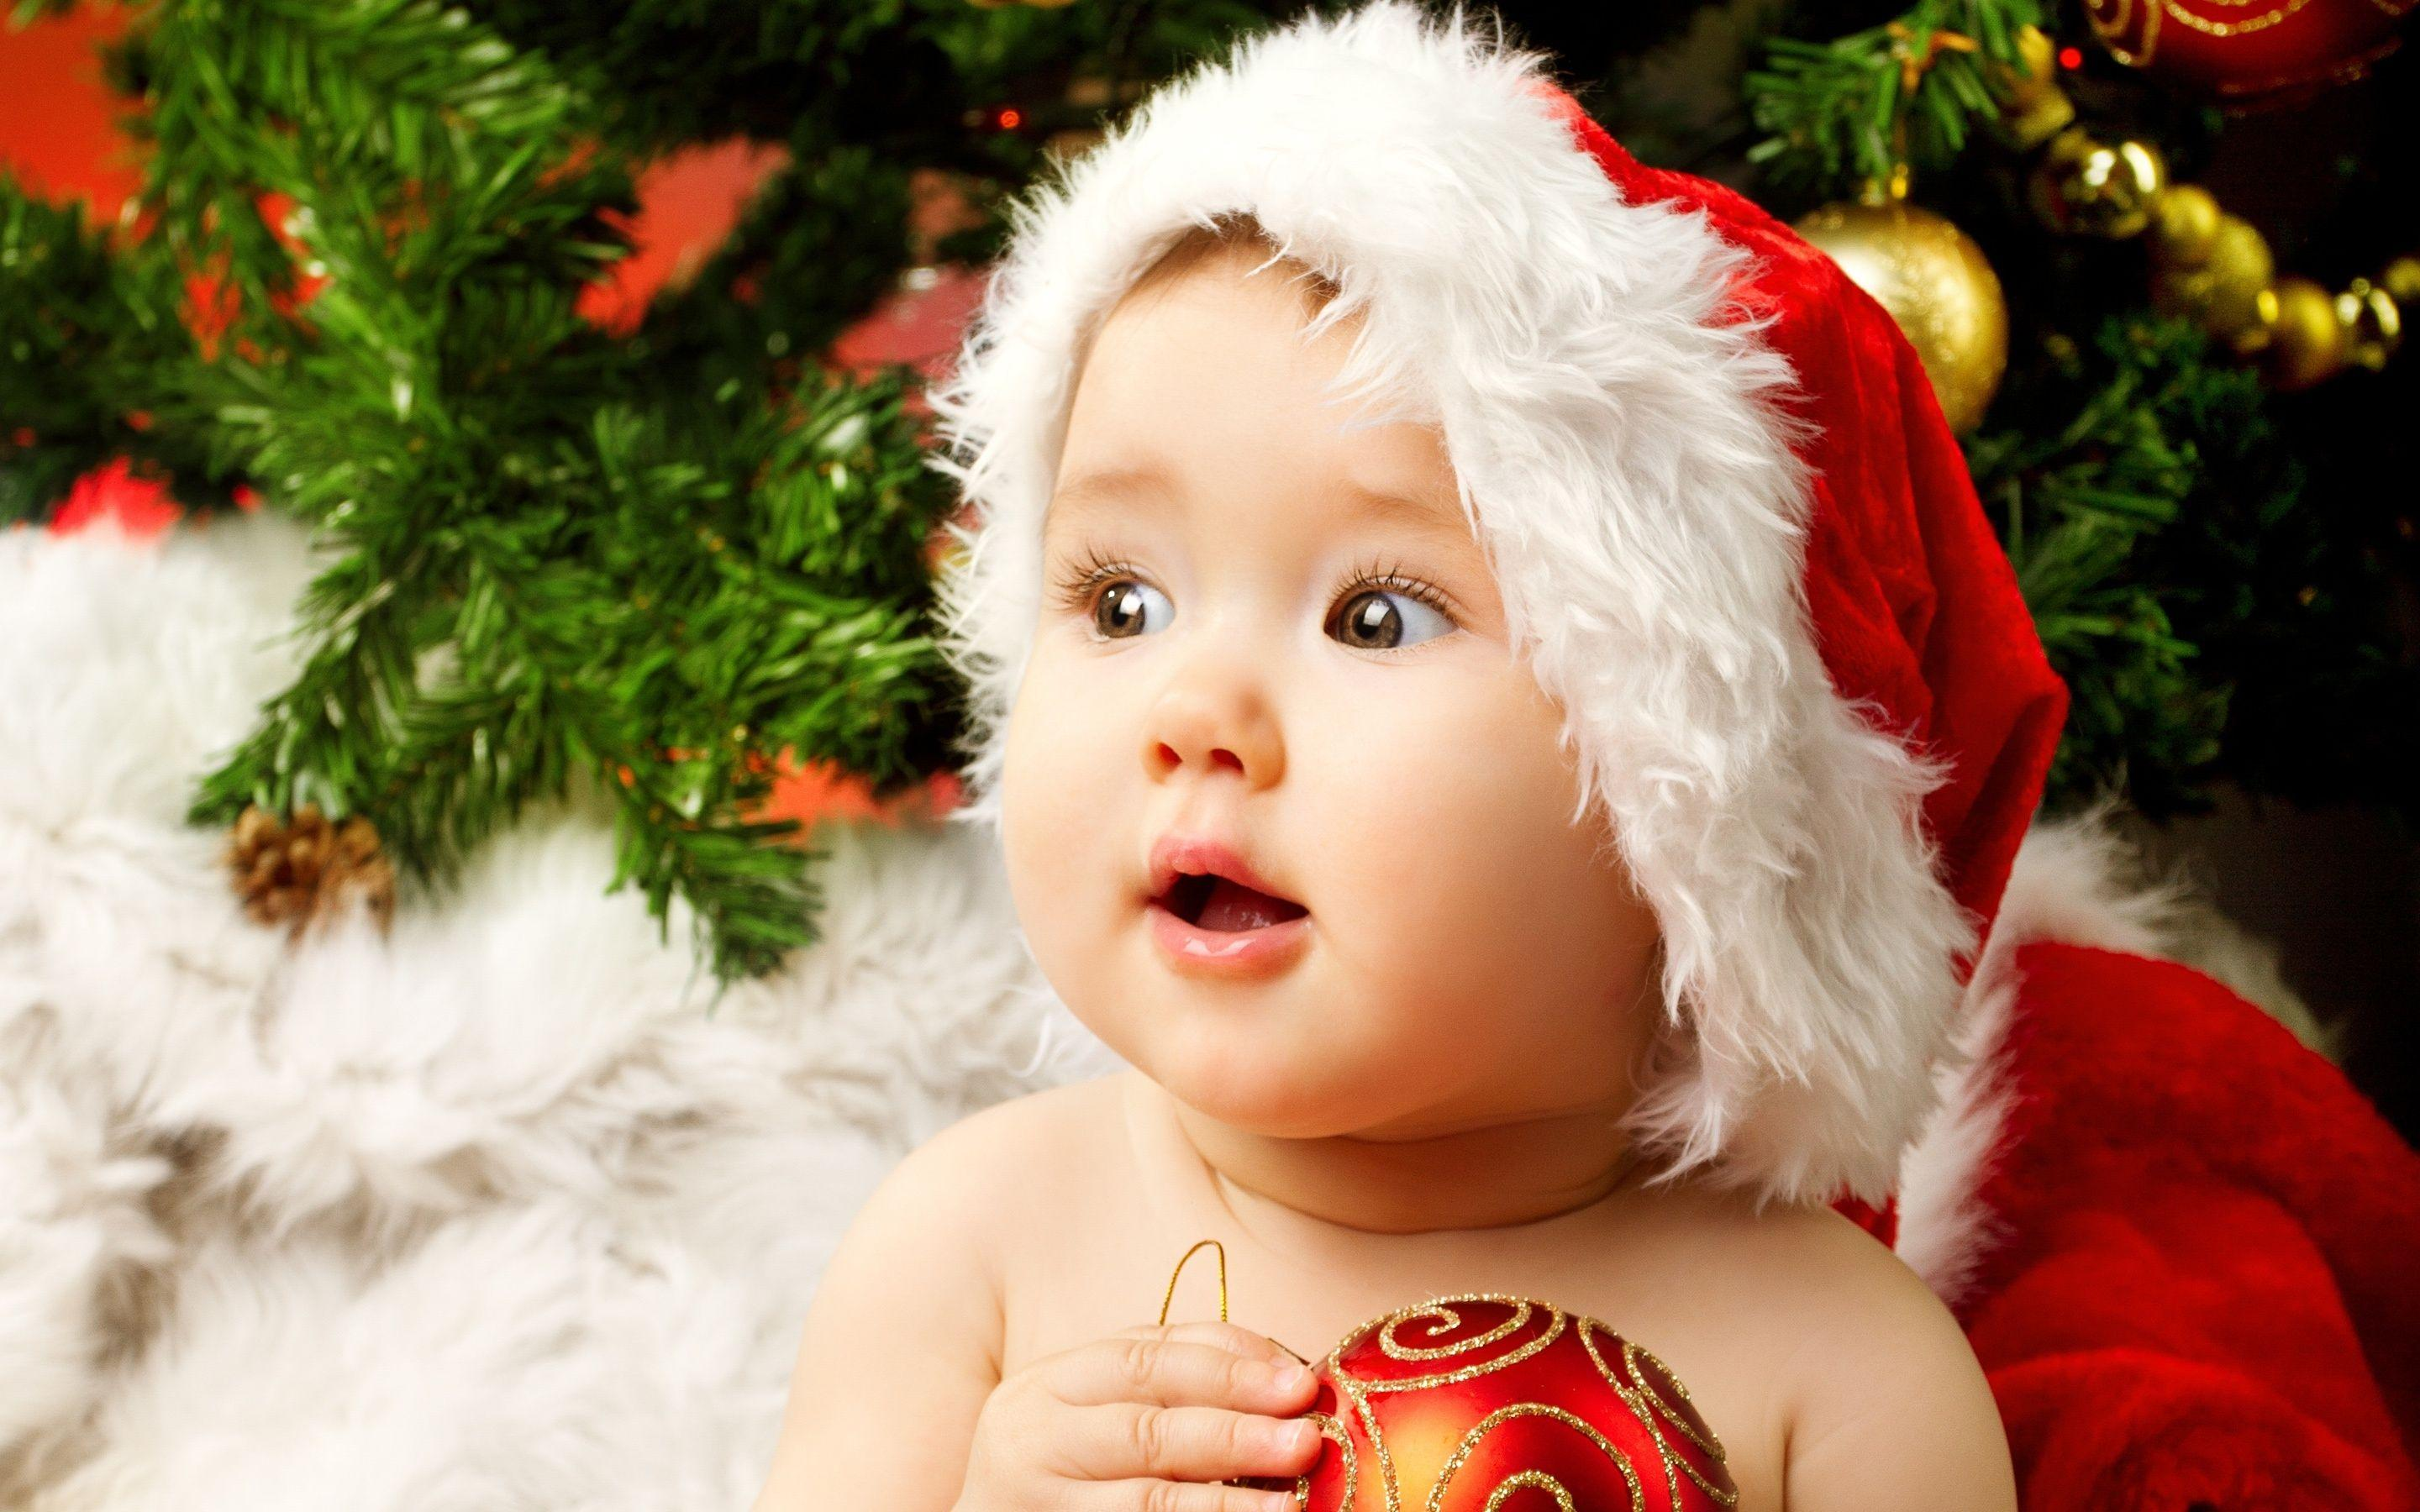 cute baby wallpaper wallpapers for free download about 3219